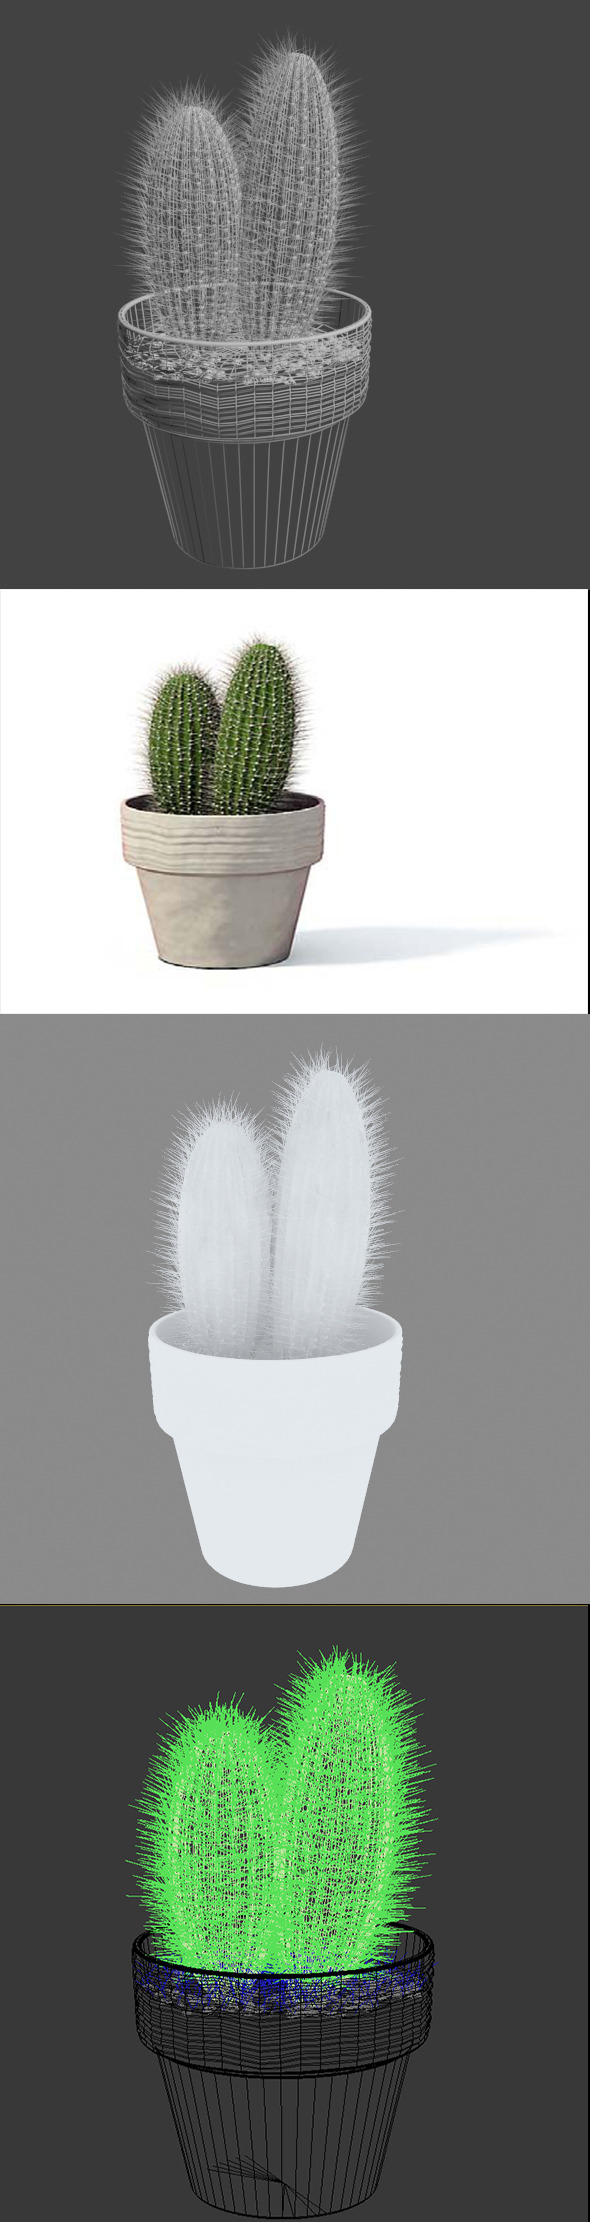 3D Cactus pot plant model - 3DOcean Item for Sale